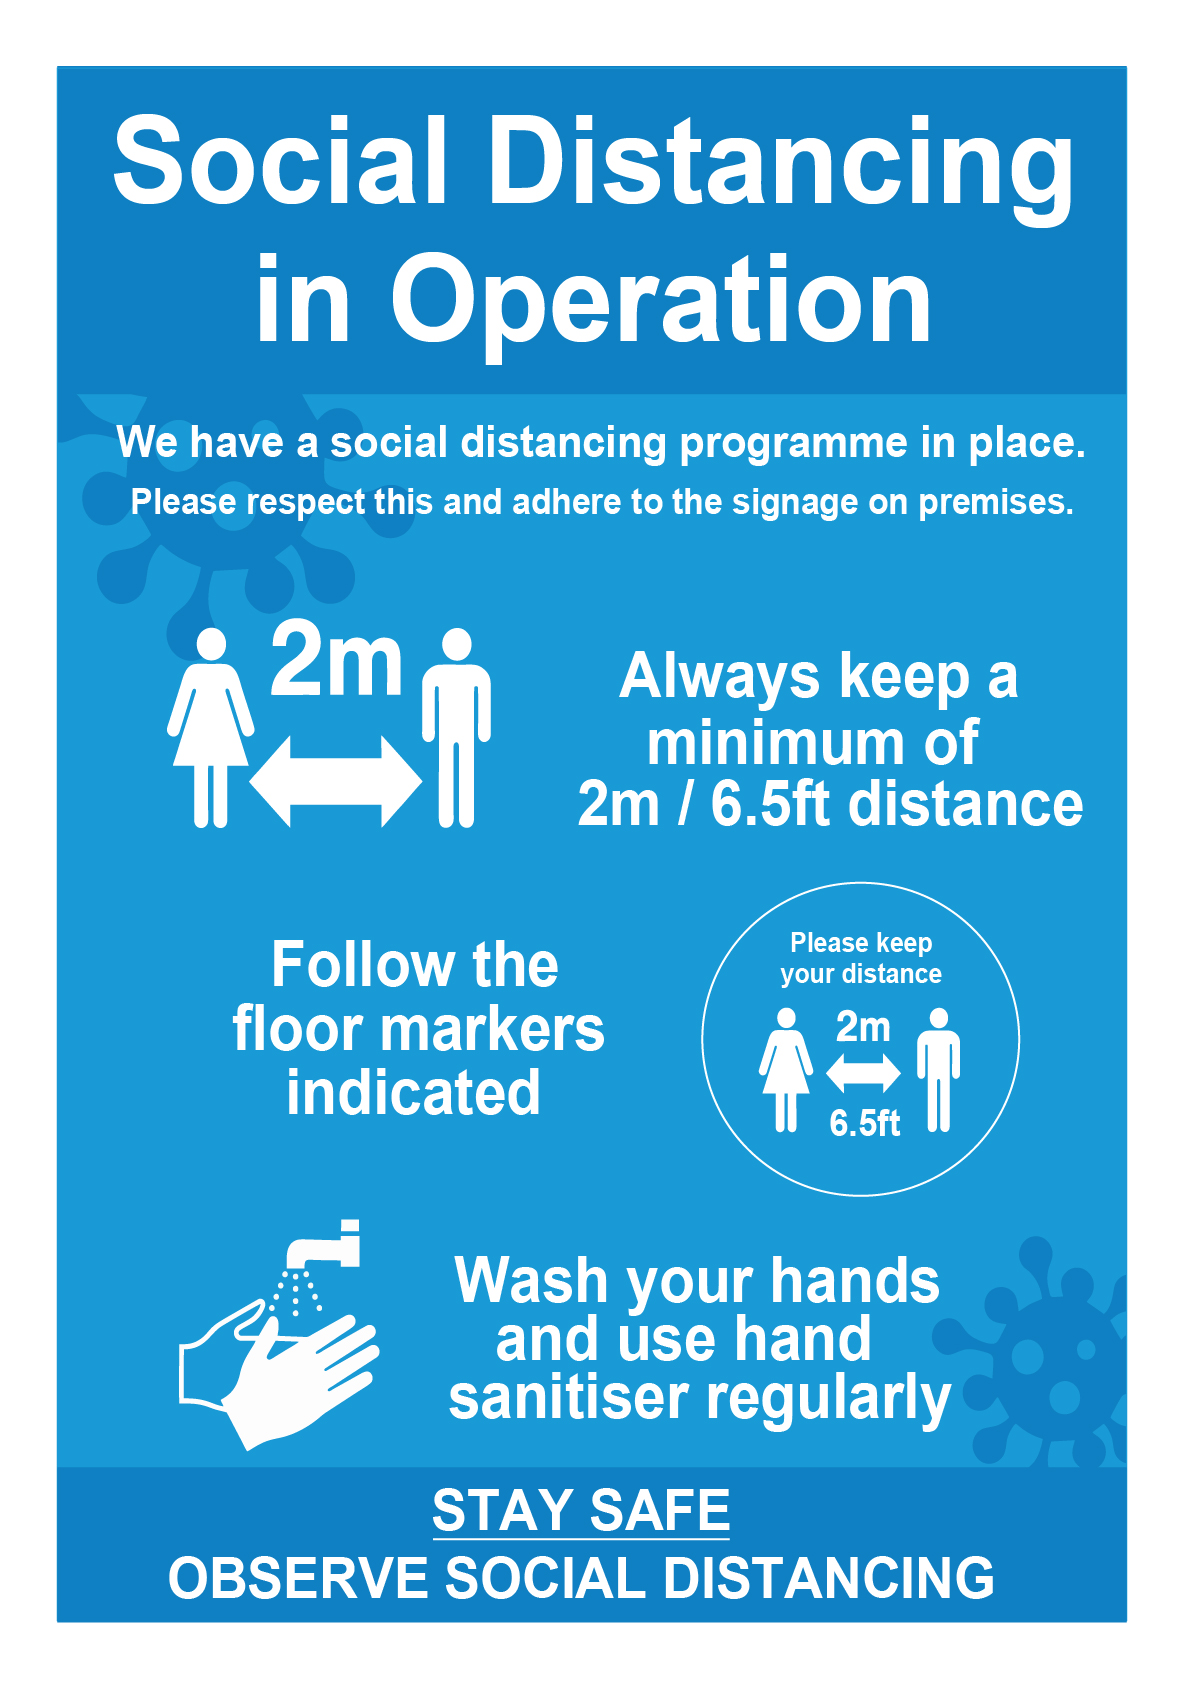 RSD-SIGN SOCIAL DISTANCING IN OPERATION